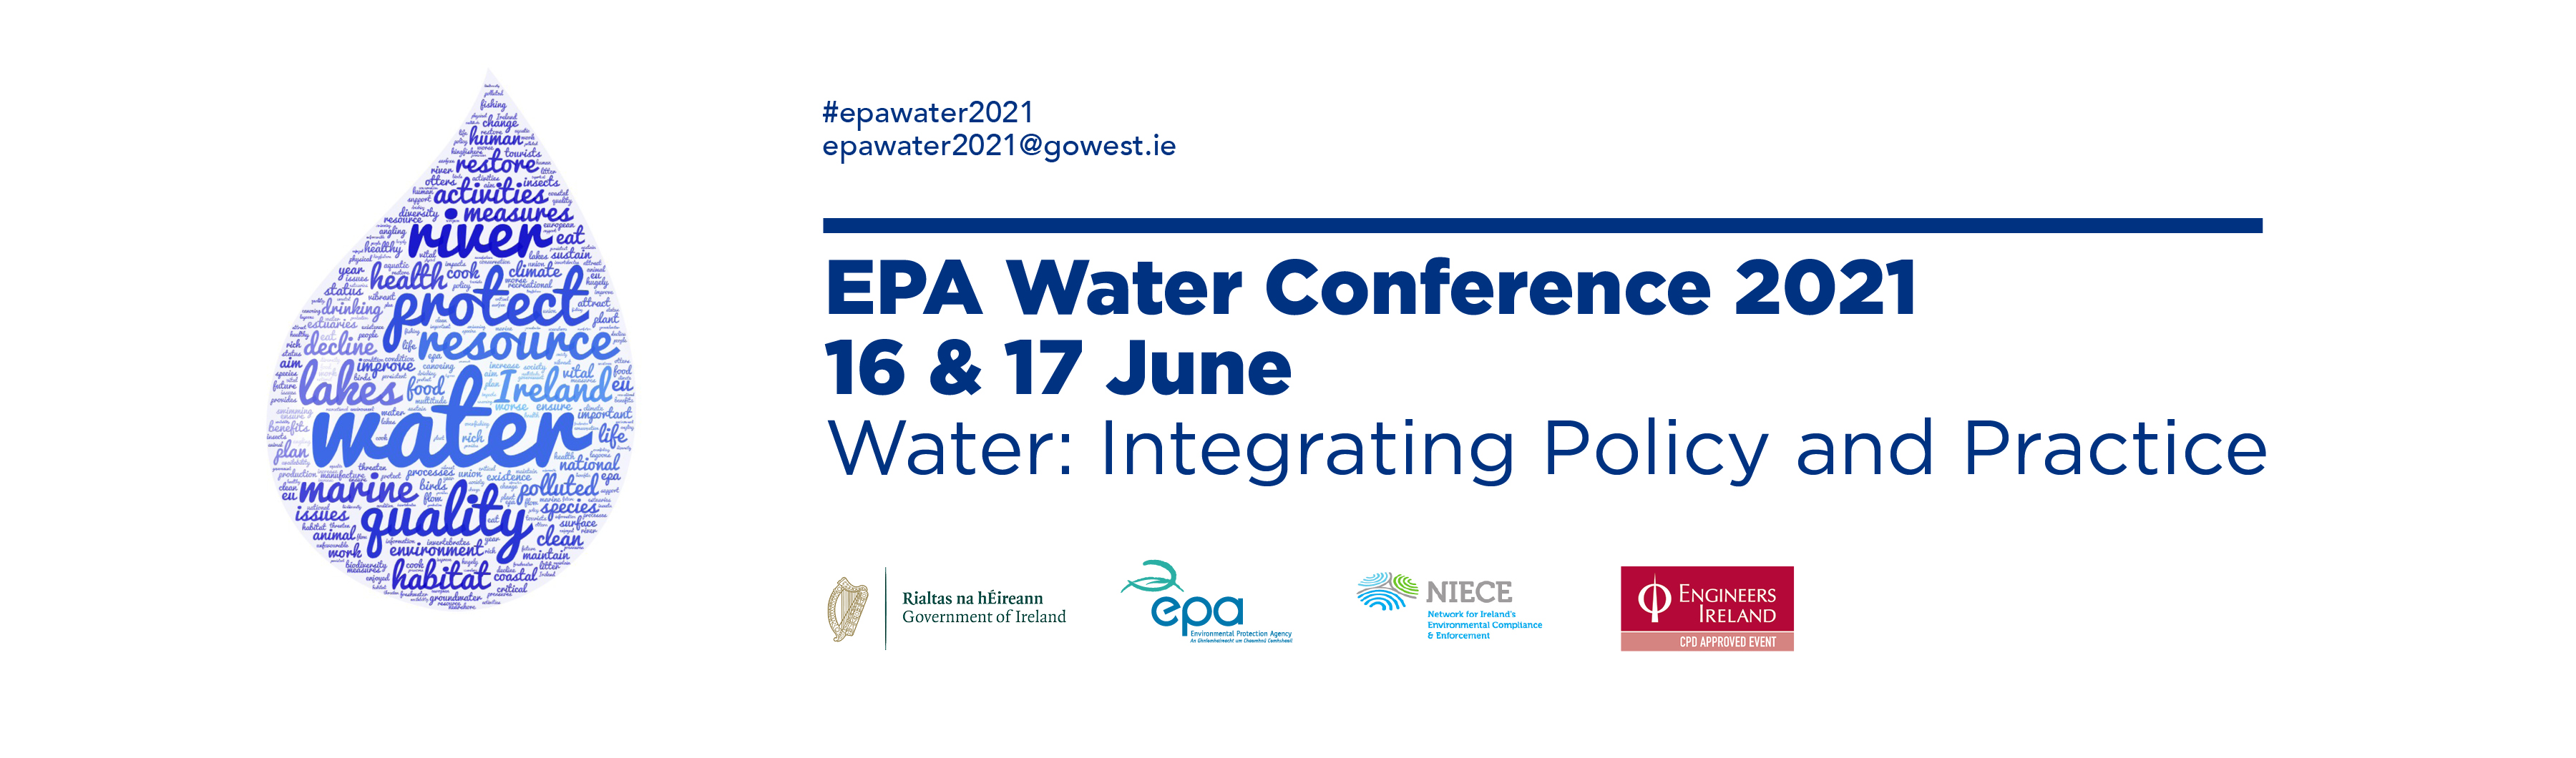 EPA Water Conference 2021